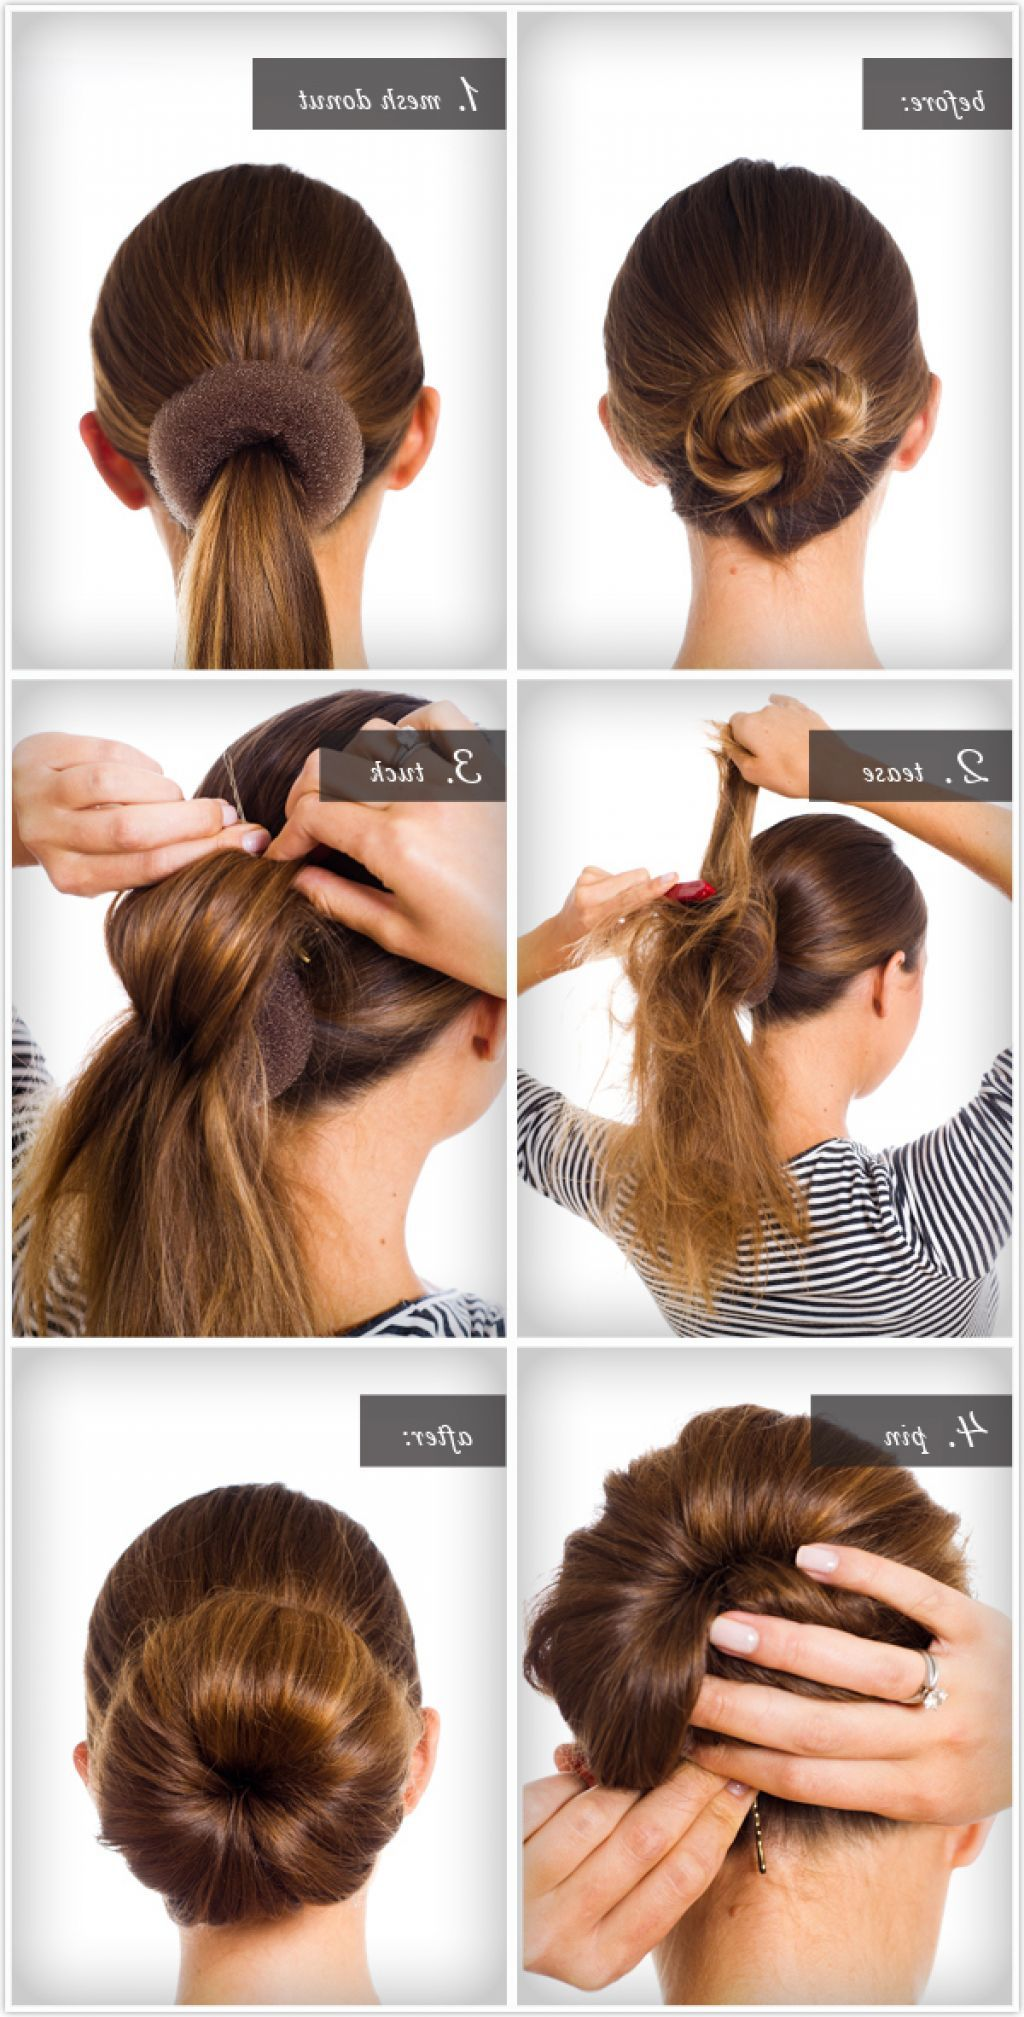 New Hairstyle 2015 Step By